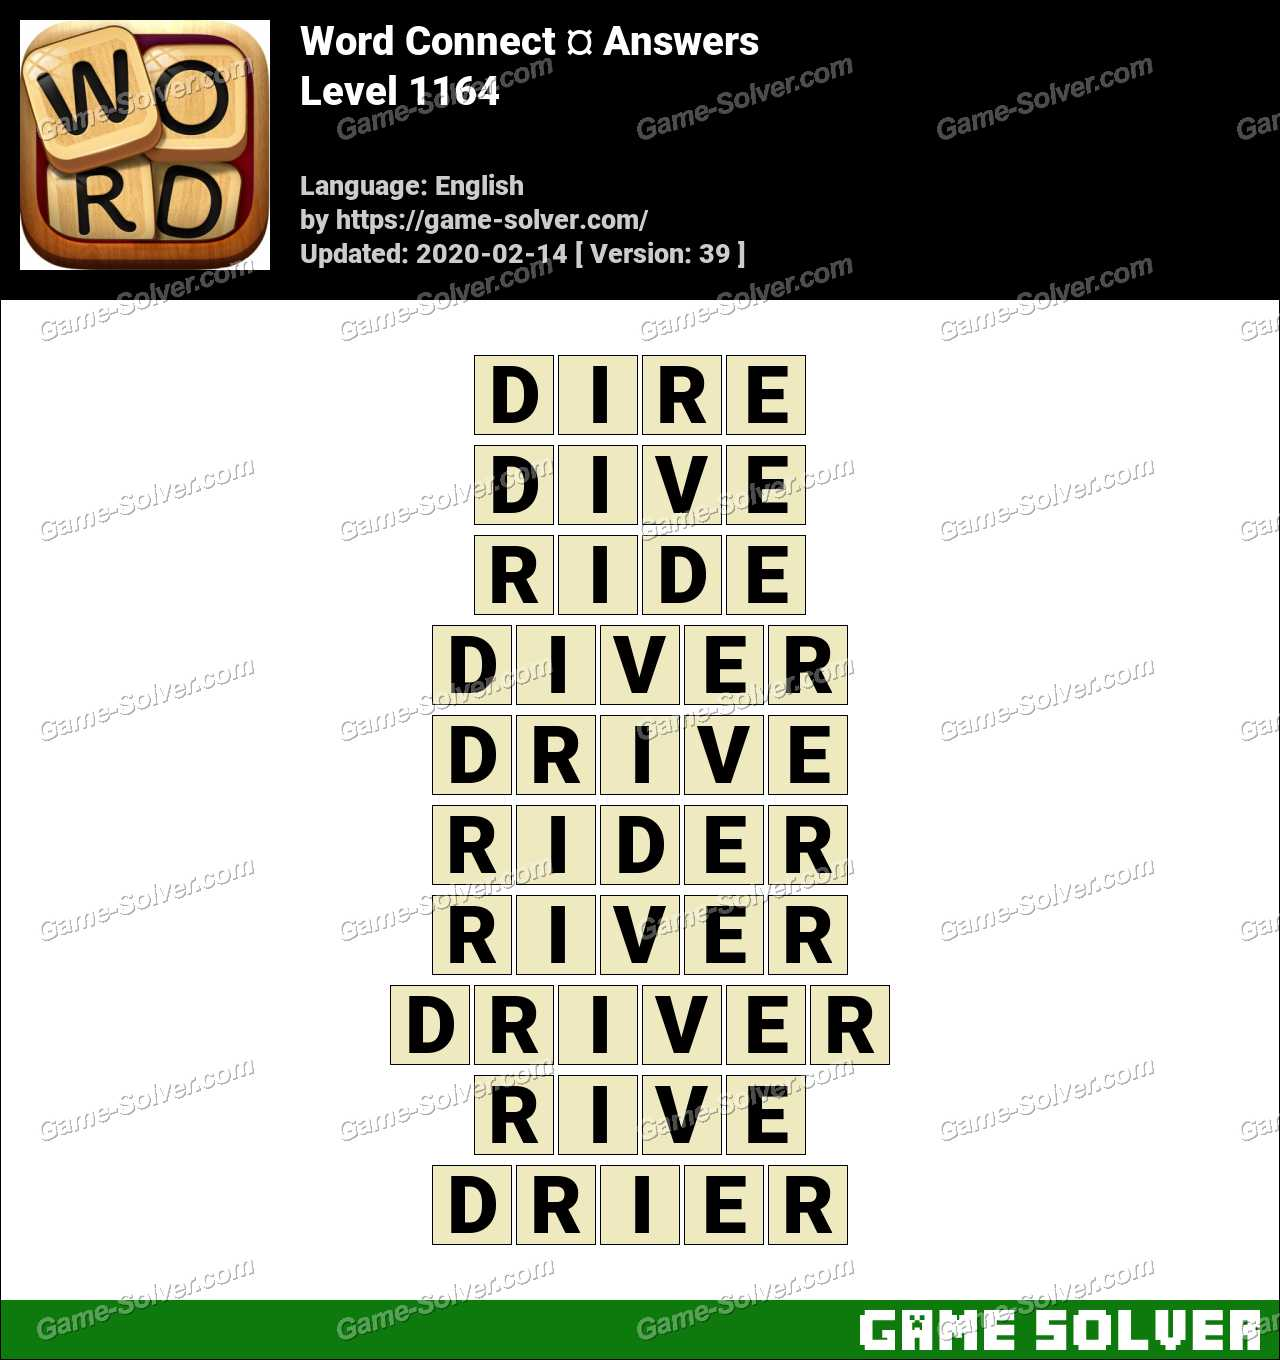 Word Connect Level 1164 Answers